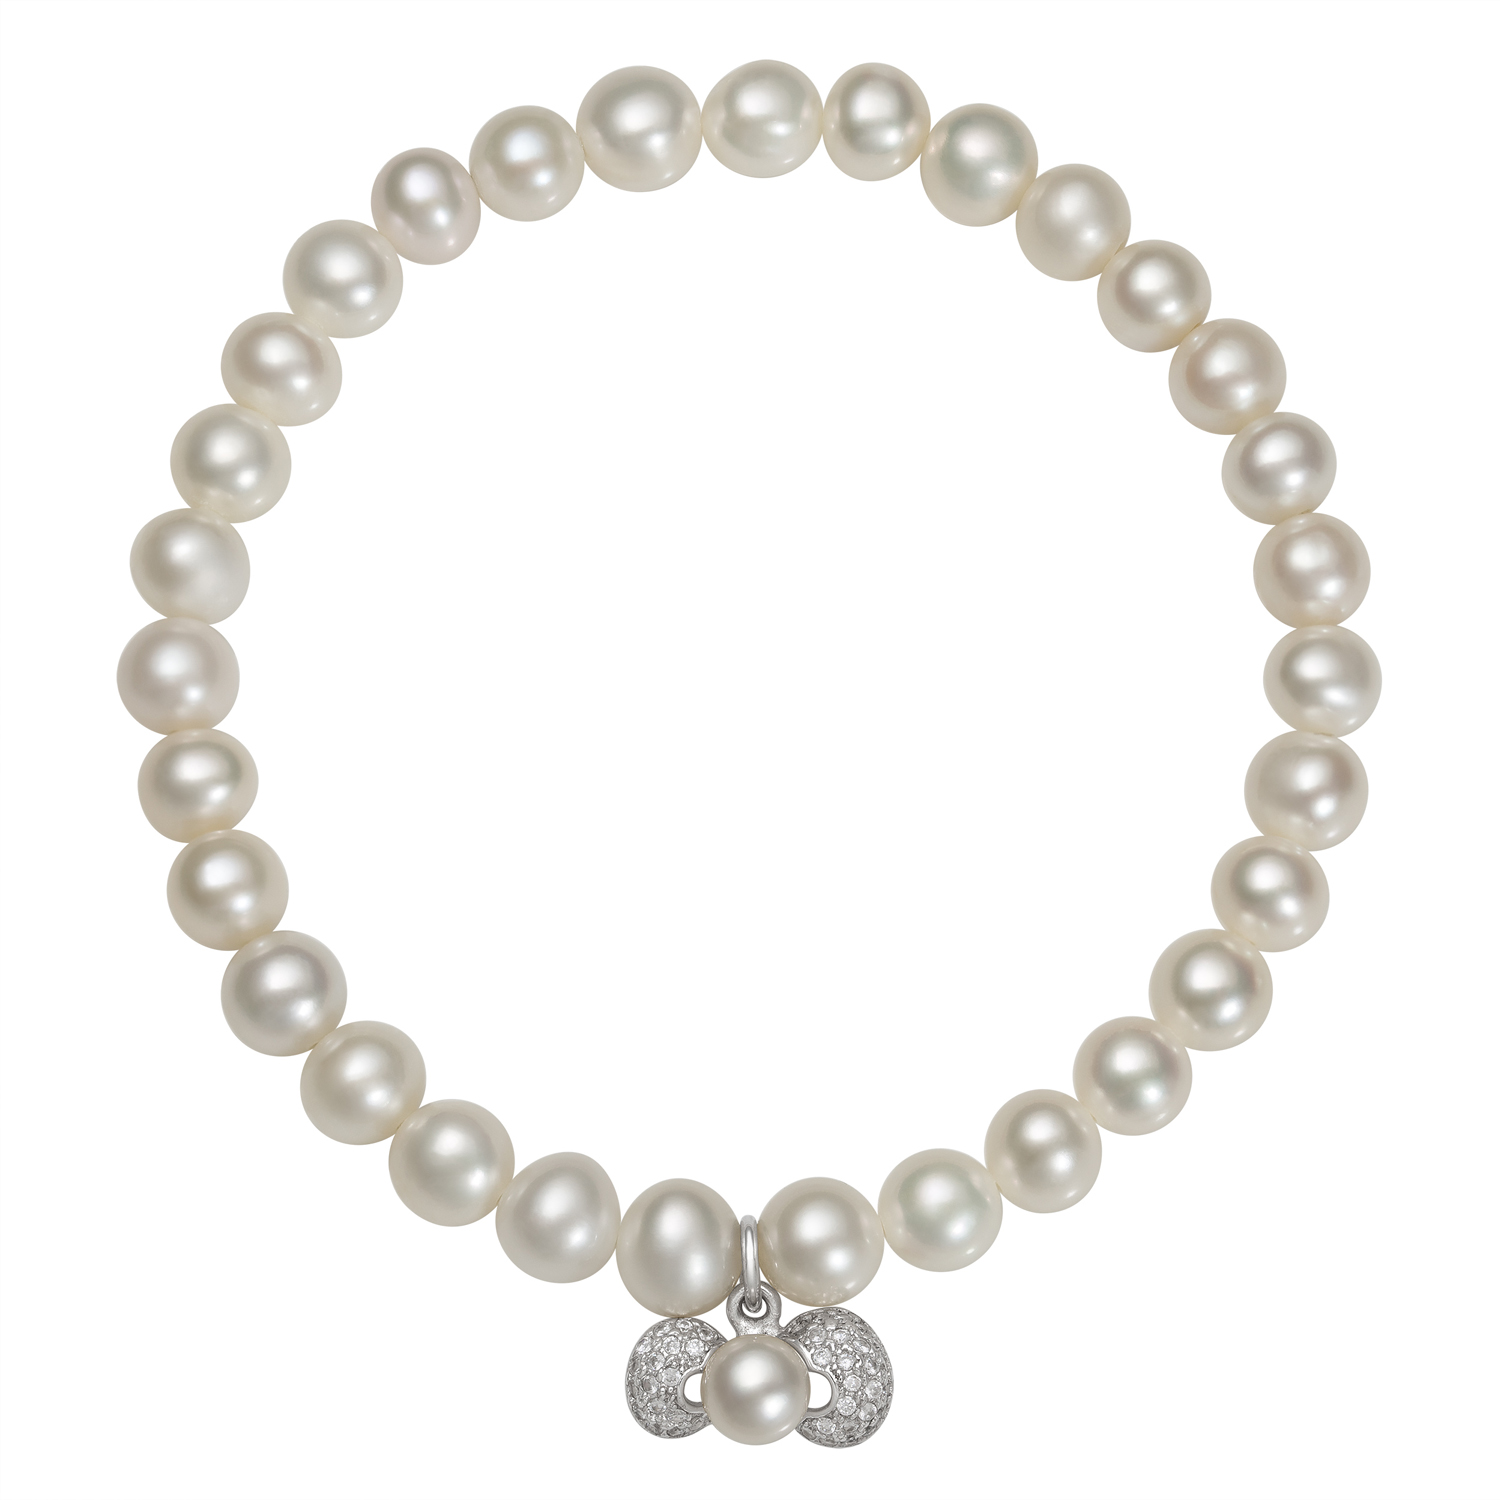 7-8mm White Cultured Freshwater Pearl and Cubic Zirconia Encrusted Bow Charm Stretch Bracelet, 7.5